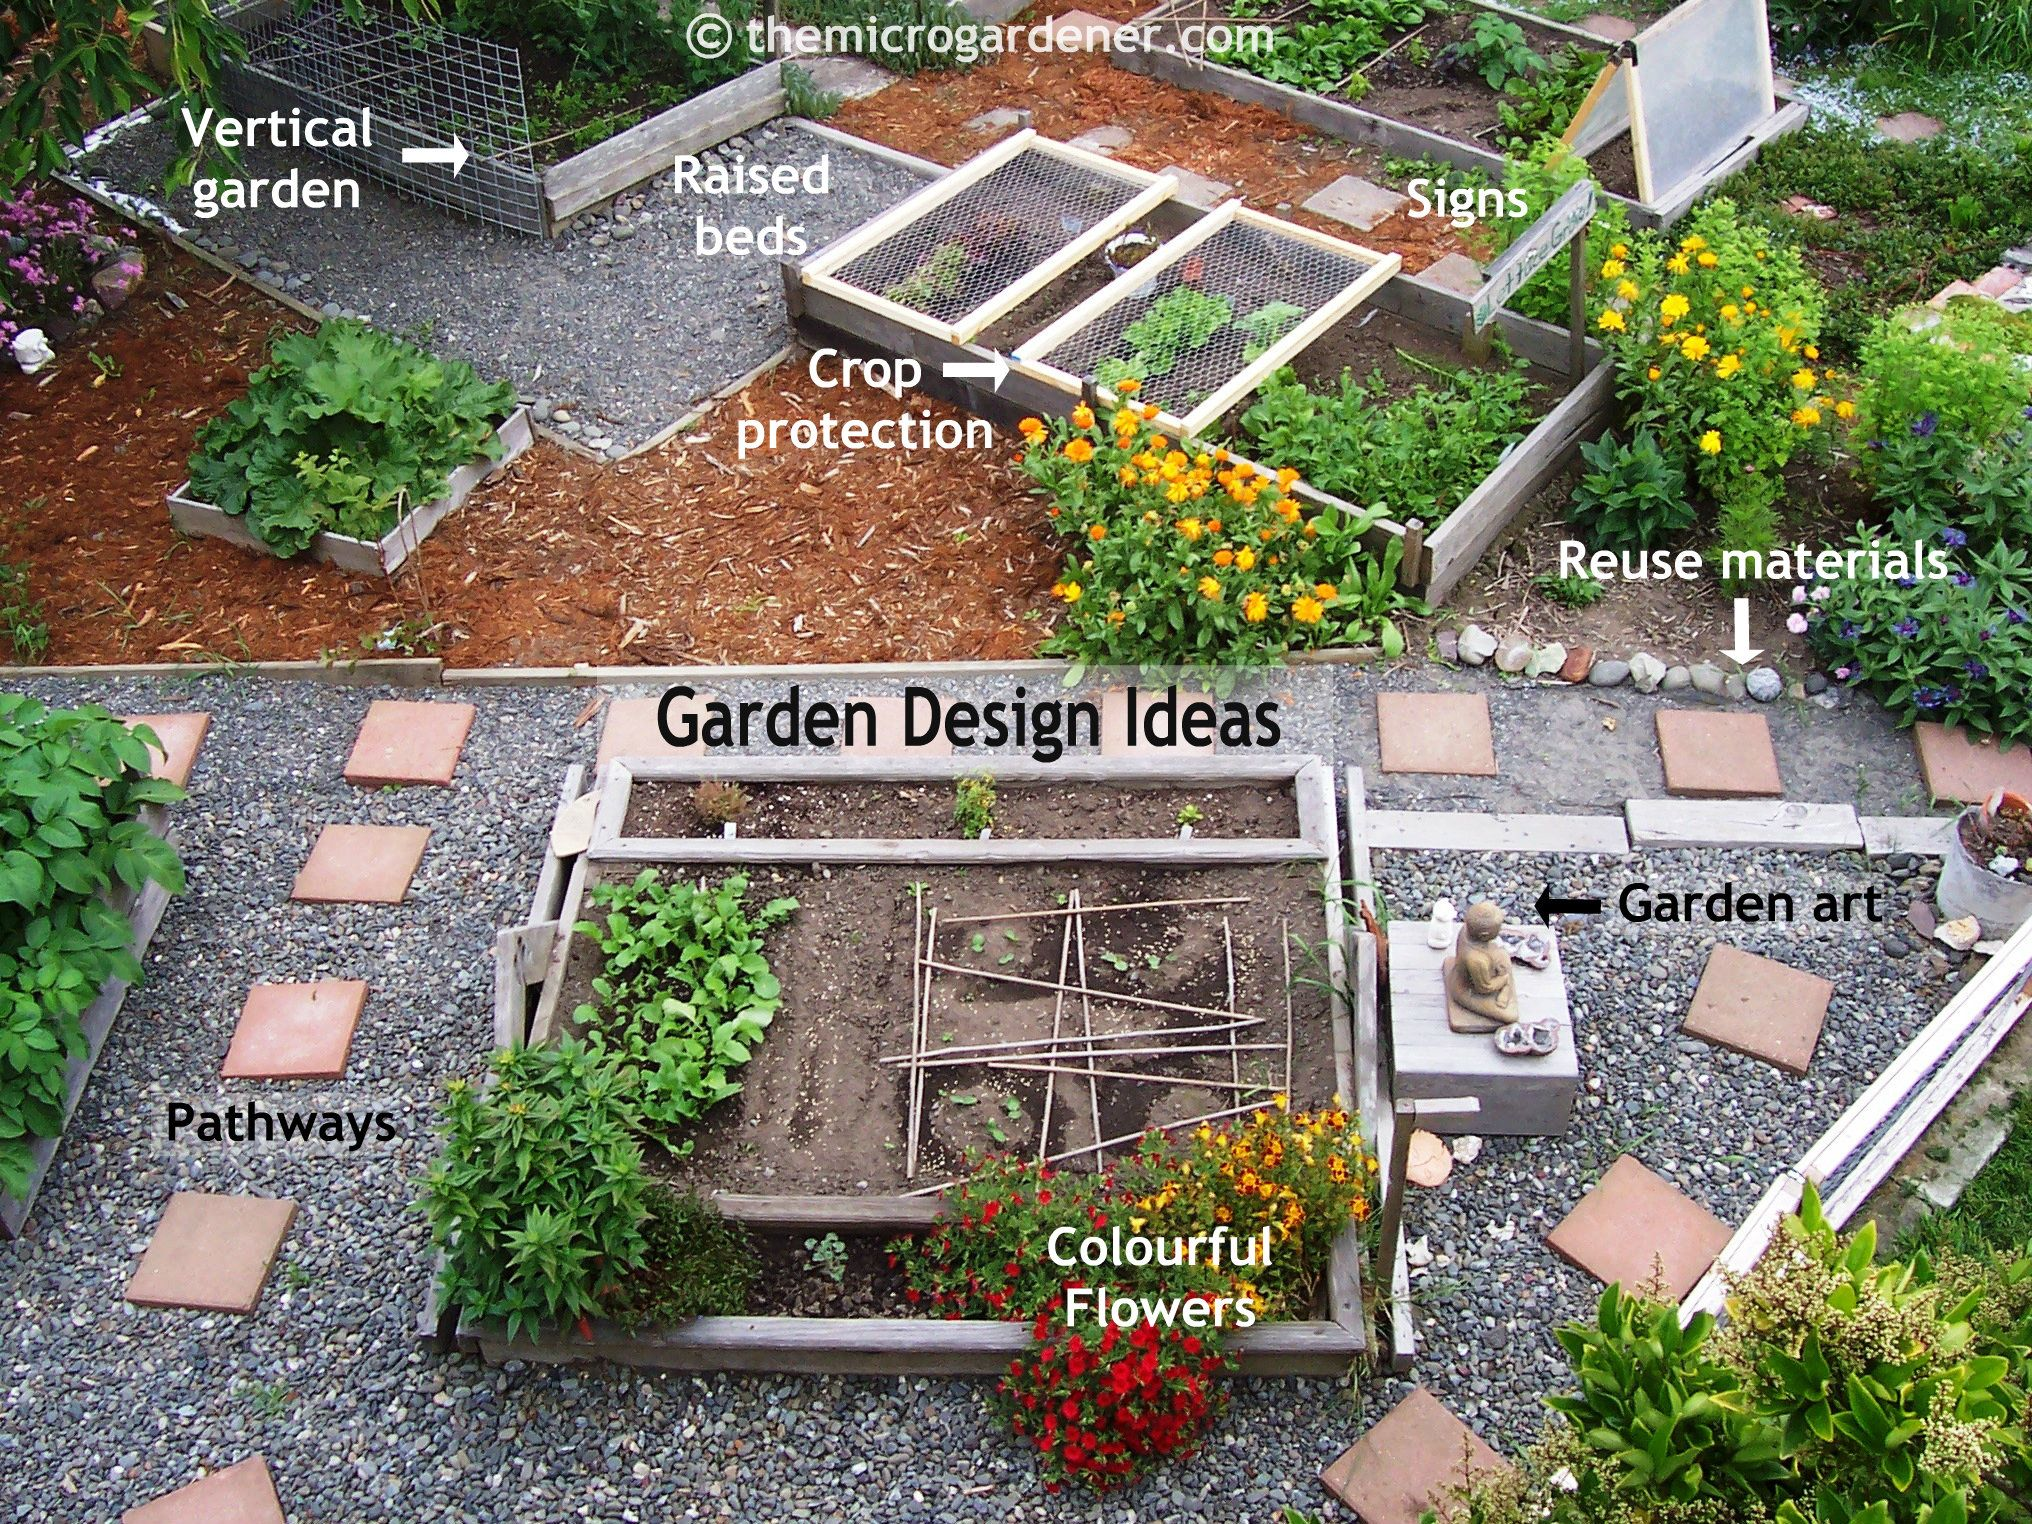 Small garden design ideas on pinterest vertical gardens for Tiny garden design ideas